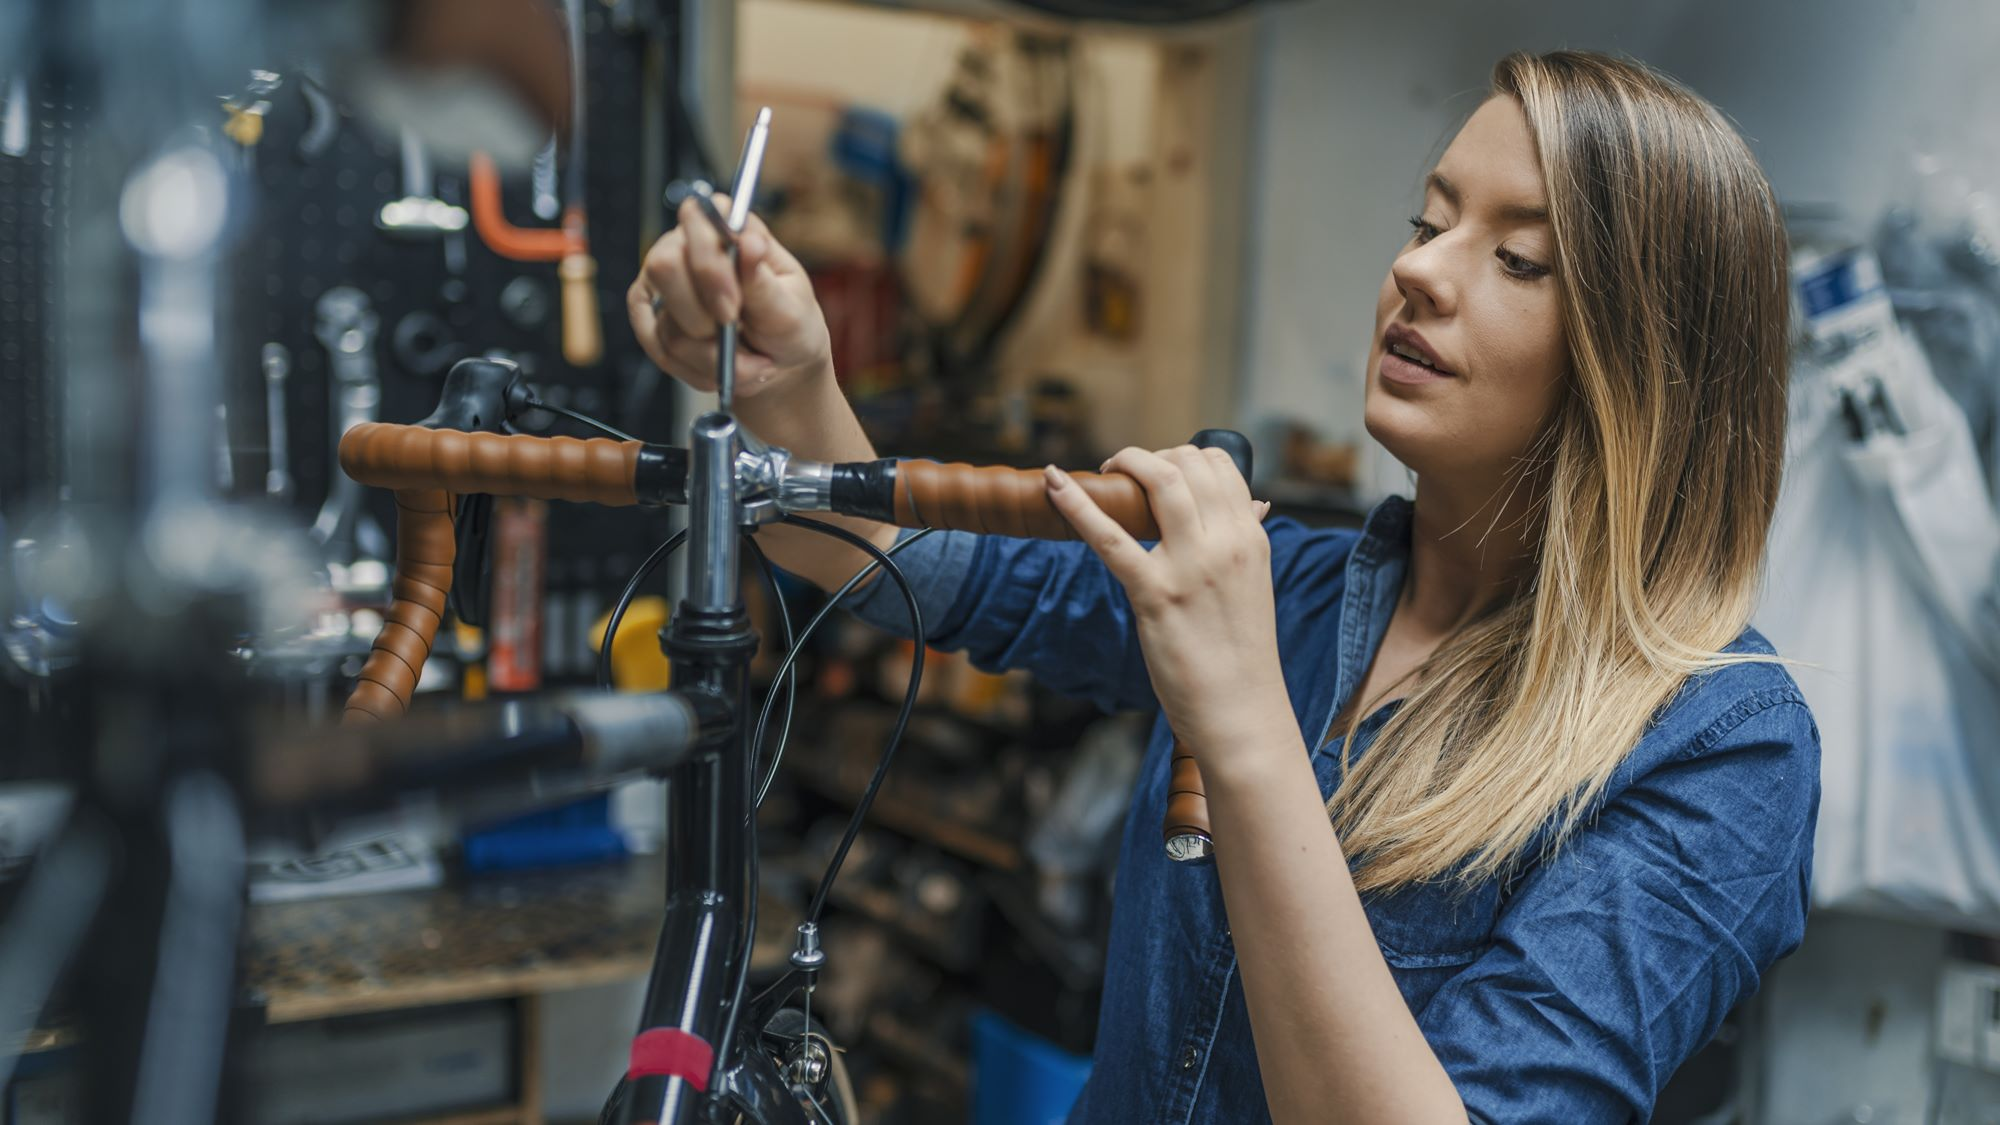 Woman bicycle technician fixing a bike